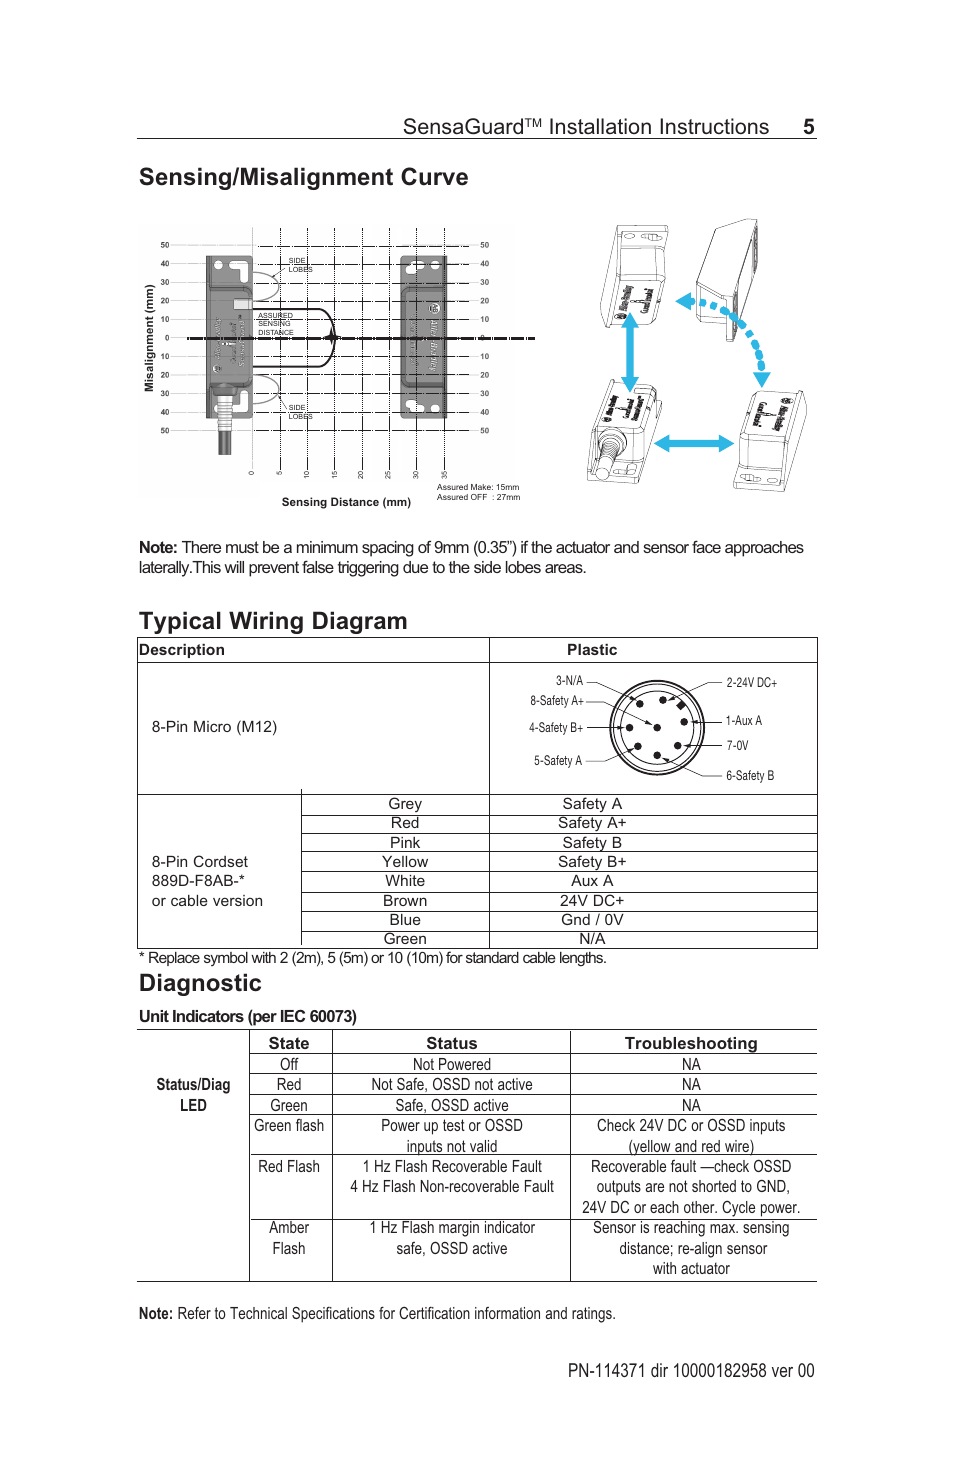 rockwell automation 440n sensaguard rectangular flat pack installation instructions page5 sensing misalignment curve typical wiring diagram, diagnostic sensaguard wiring diagram at mr168.co